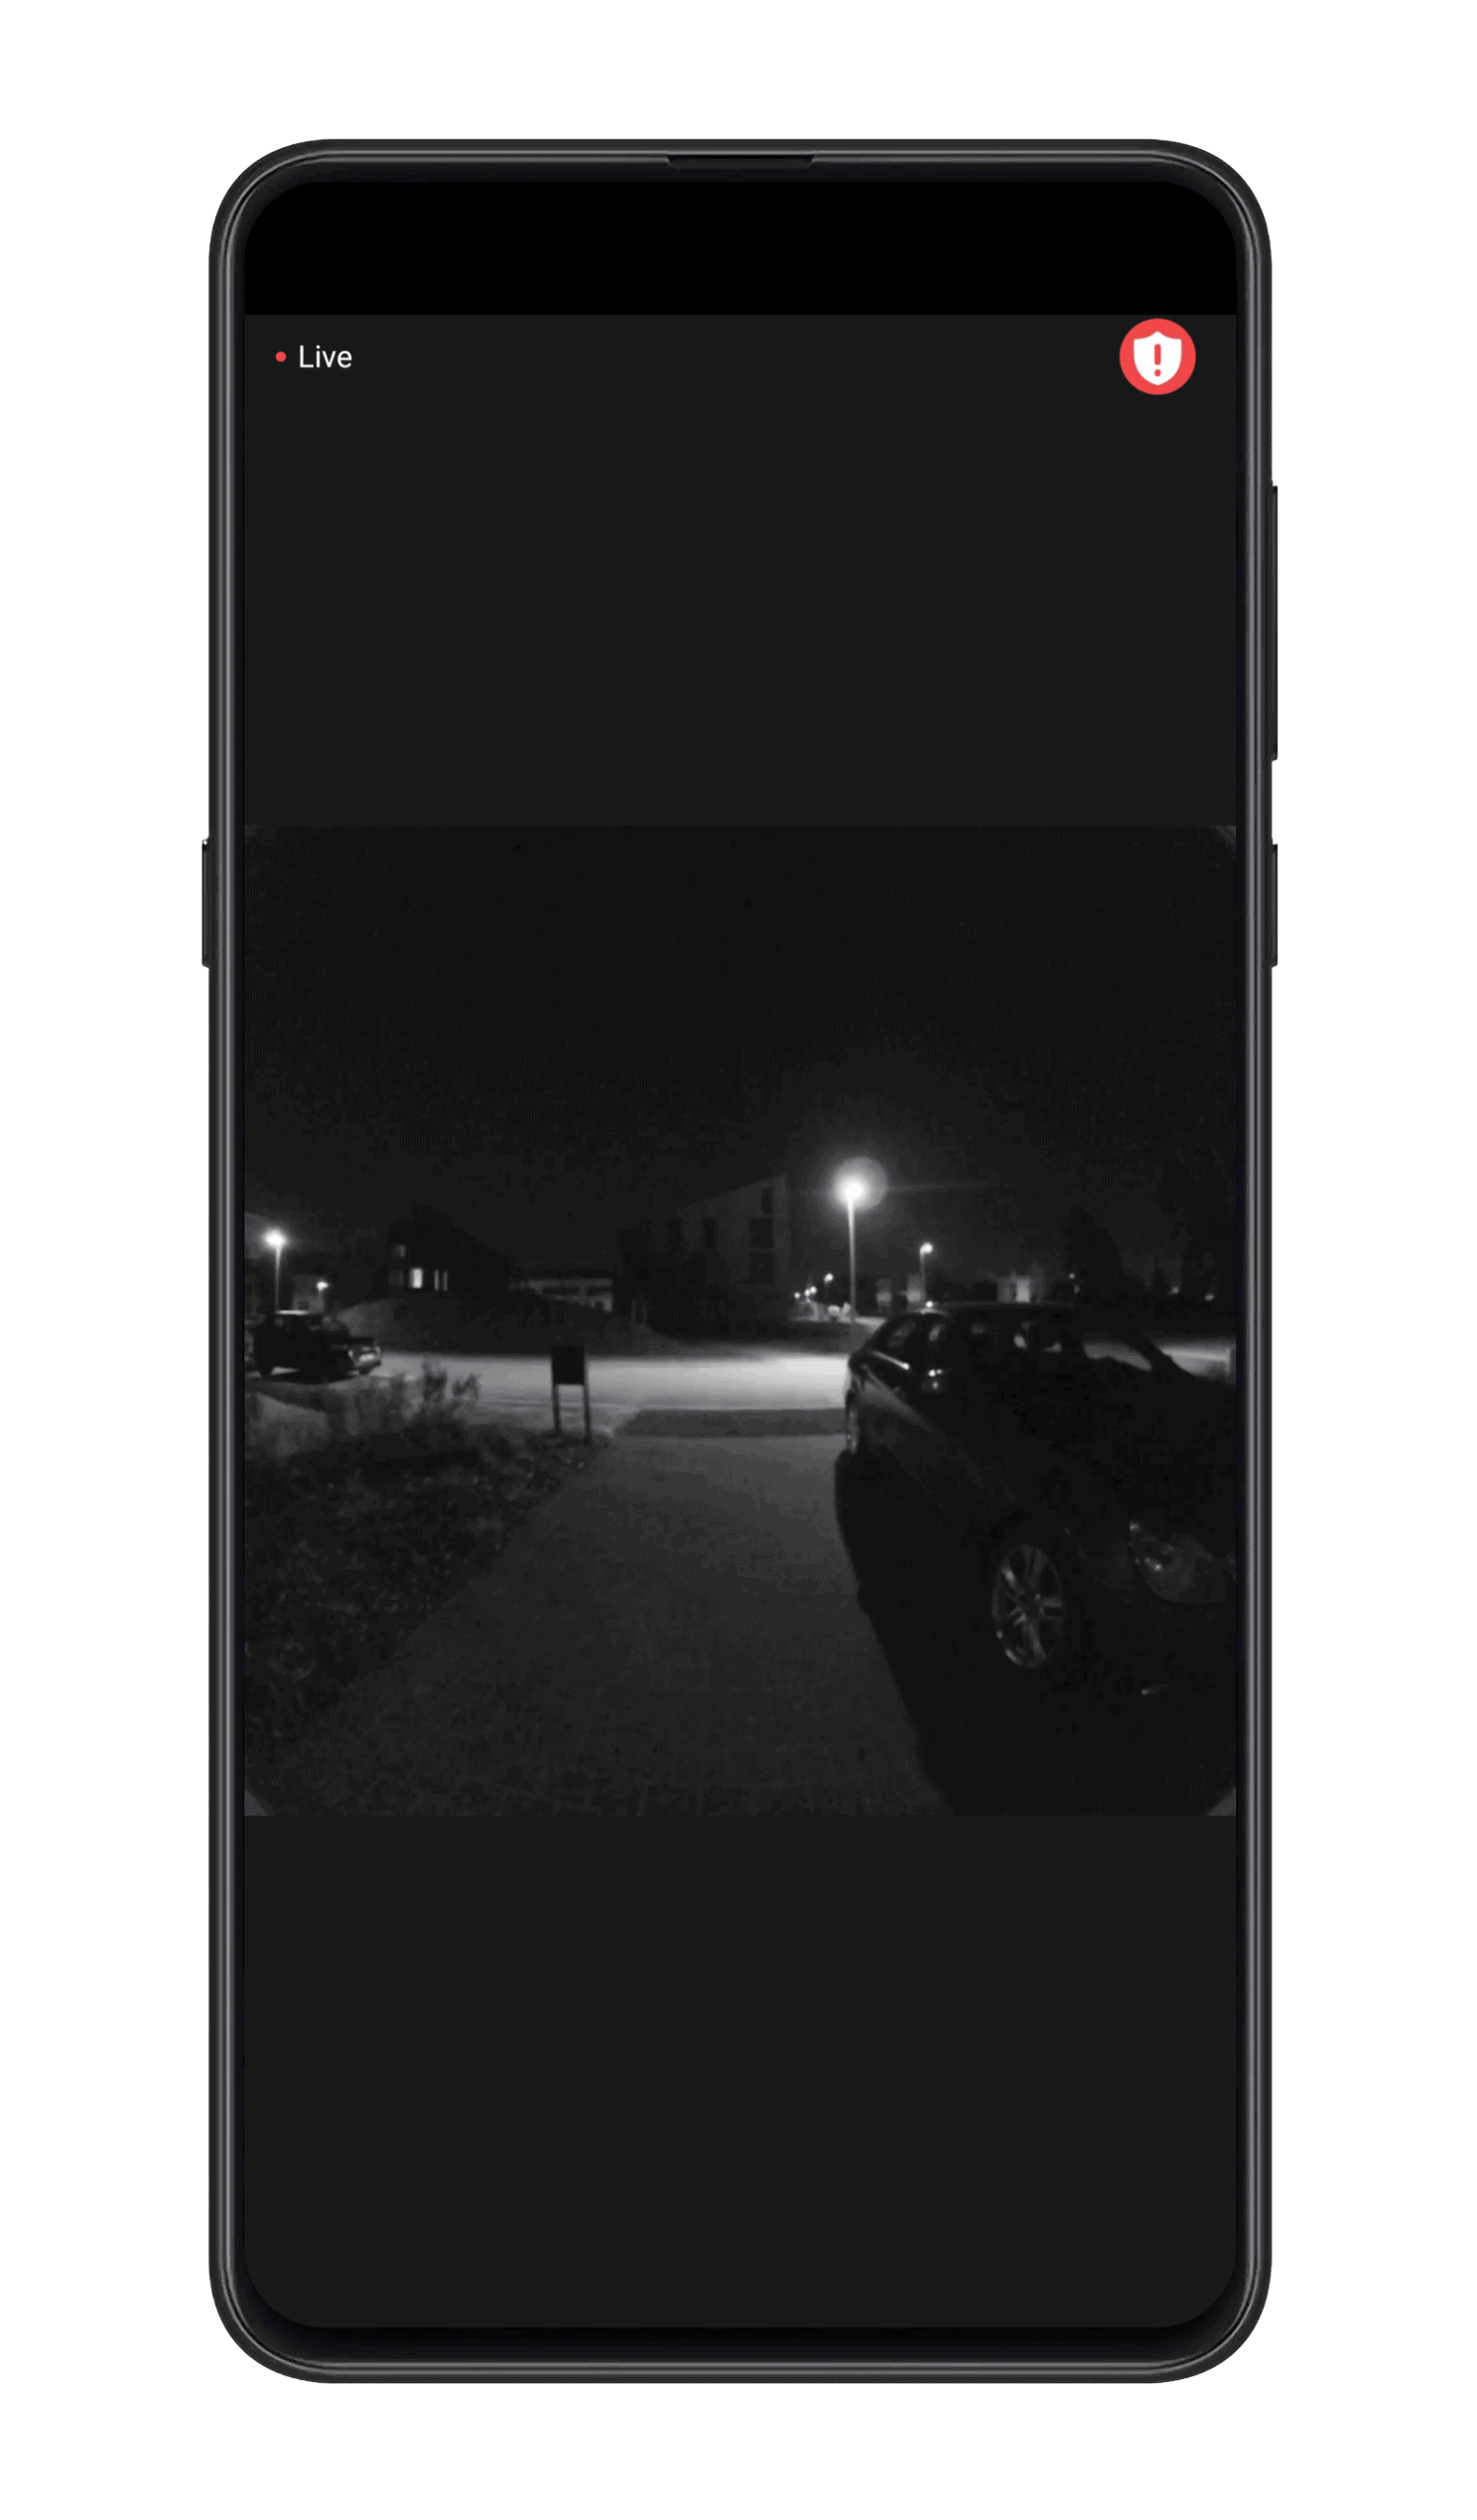 Good images at night and during the day